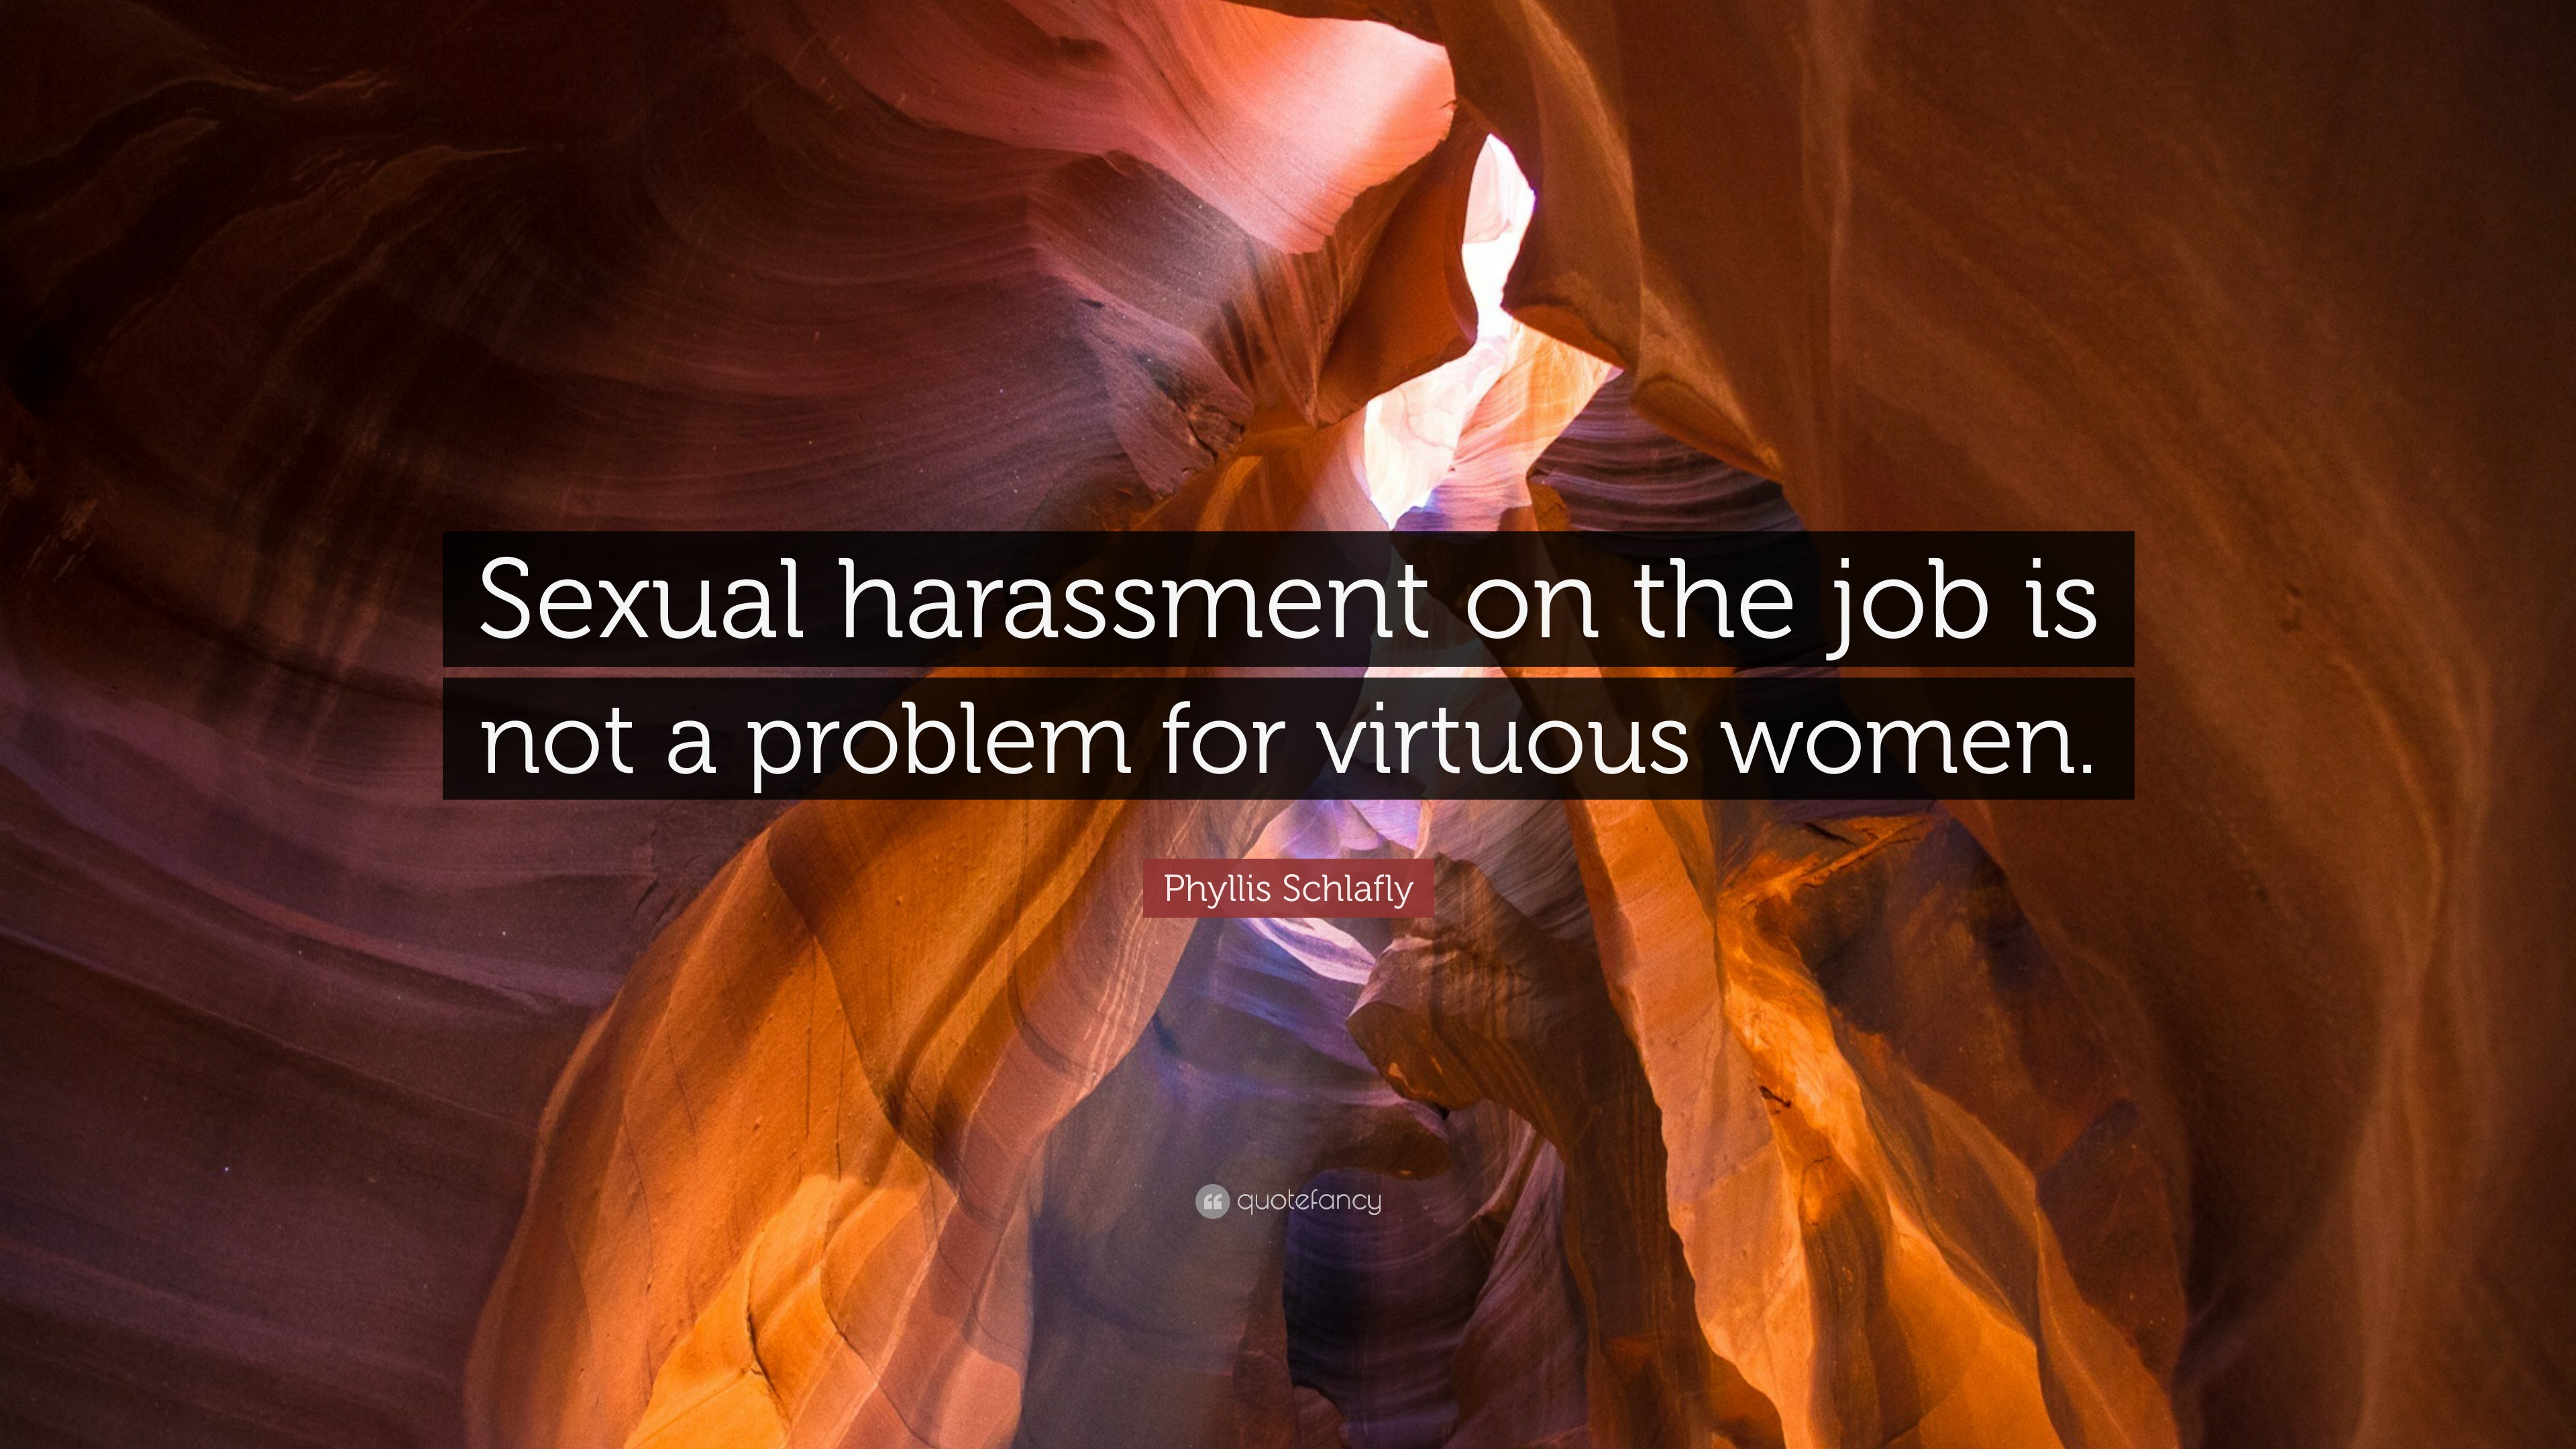 a problem not harassment is Sexual